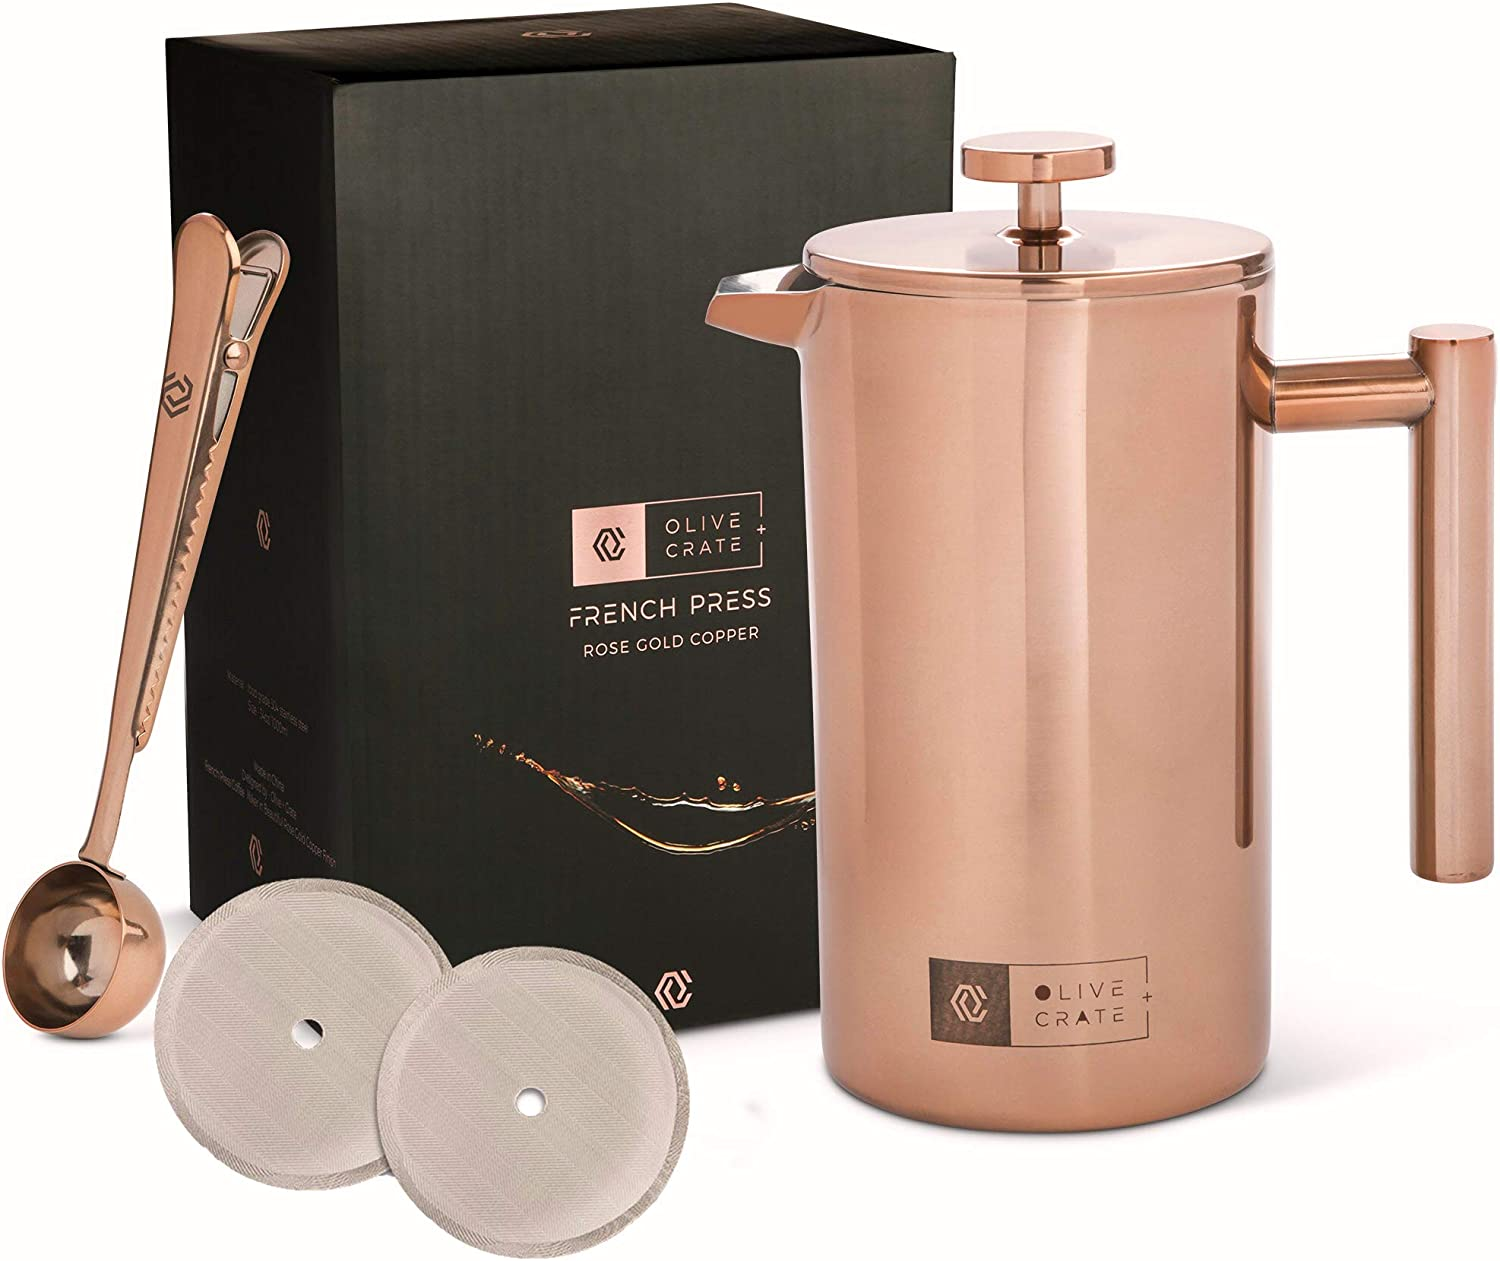 OLIVE CRATE Copper Stainless Steel French Press Coffee Maker Kit, Measuring Spoon and Clip – Large Portable Coffee Maker – Insulated French Press, Great for Travel and Outdoors, 34oz